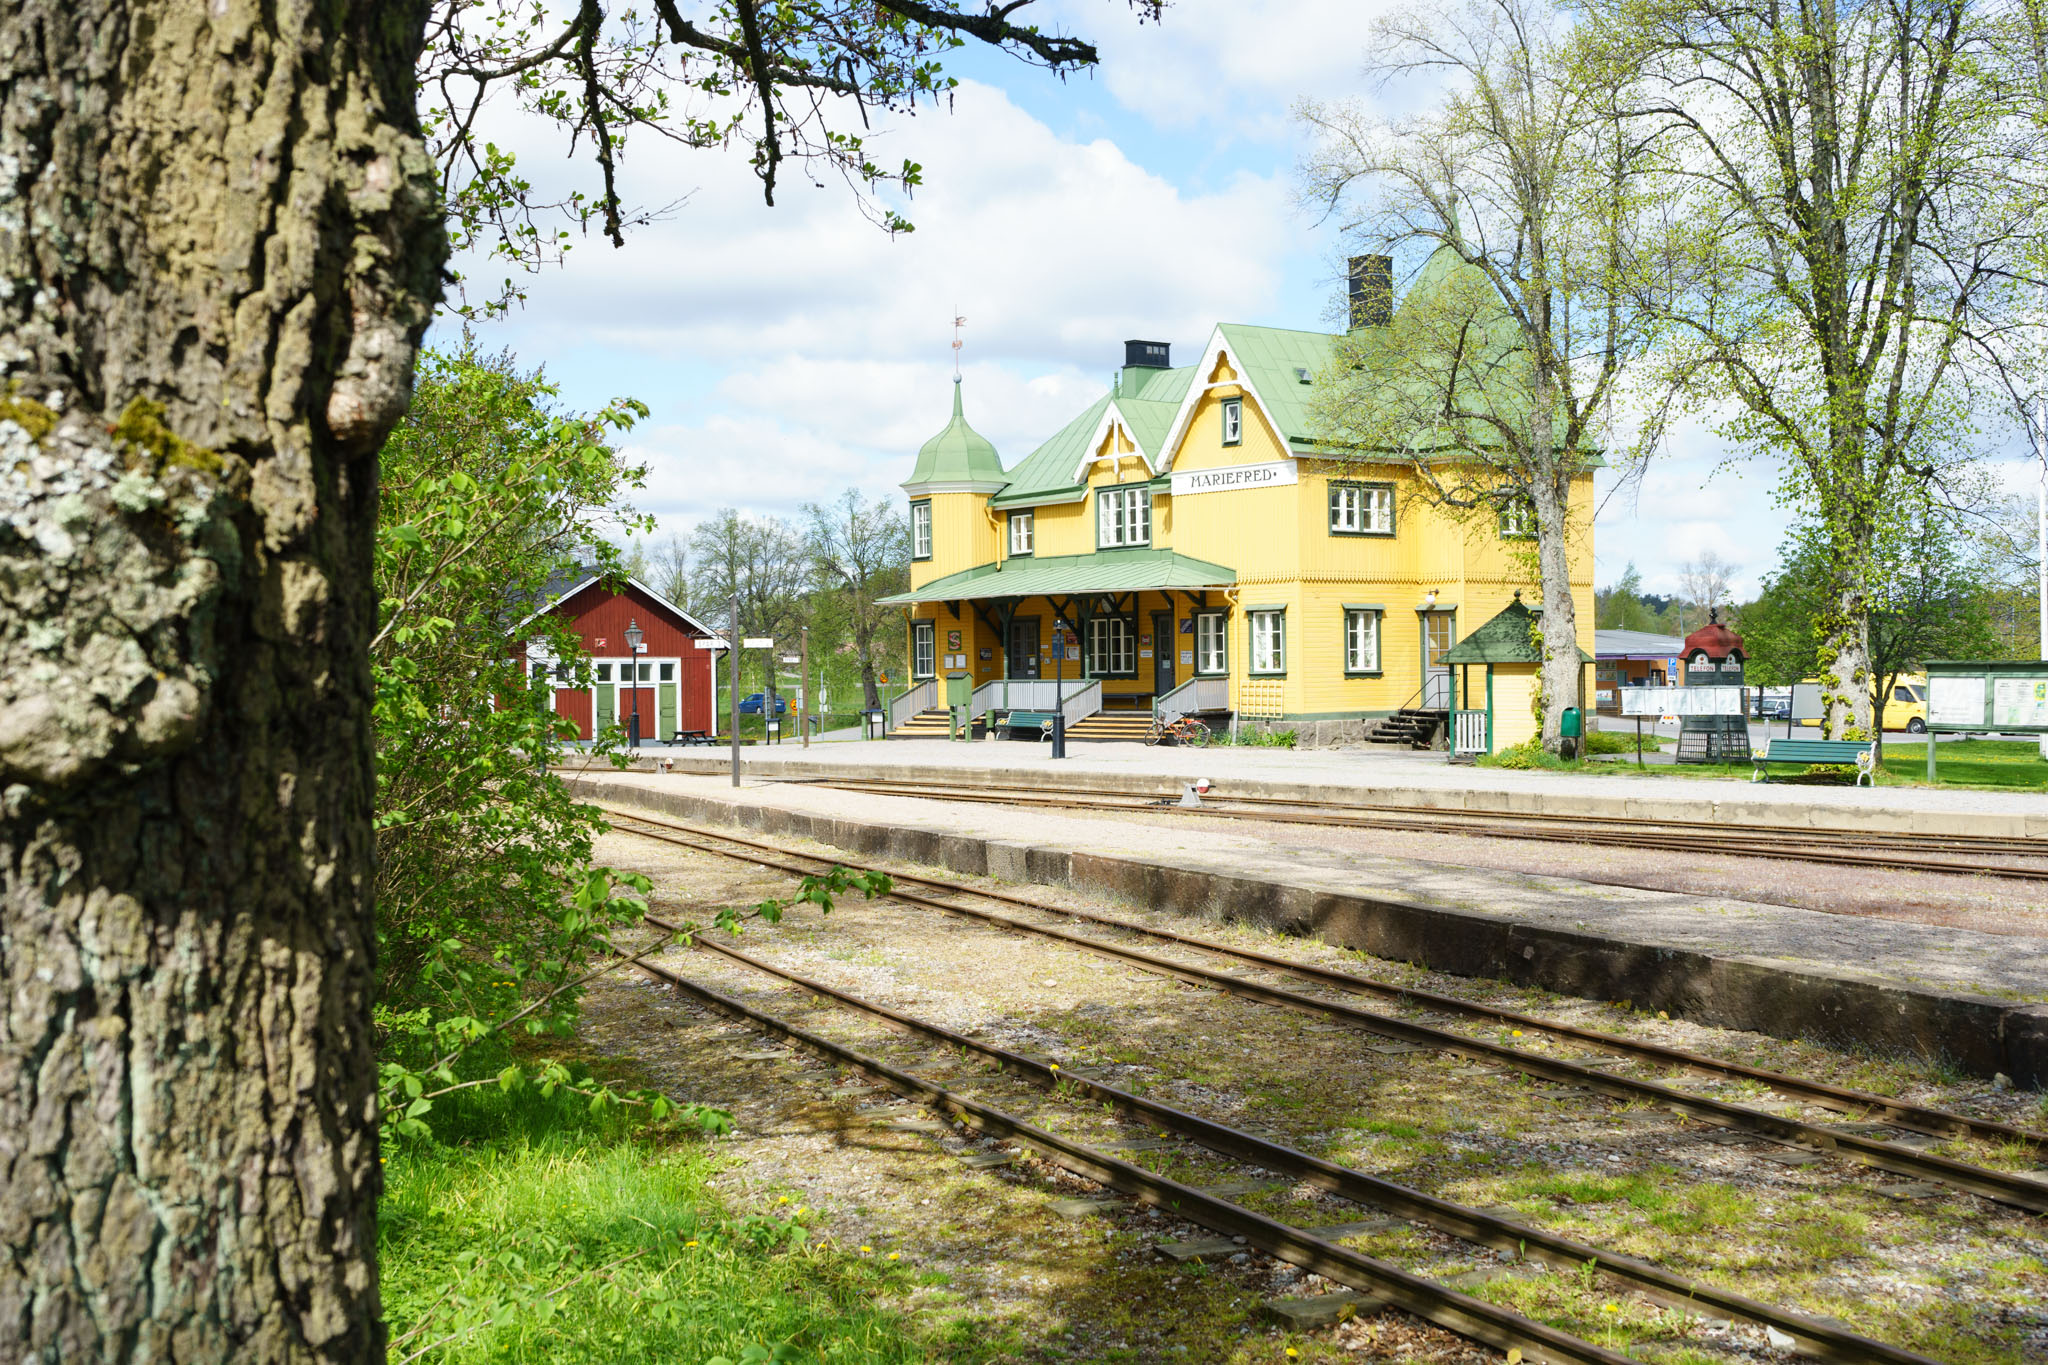 Museumsbahnhof Mariefred